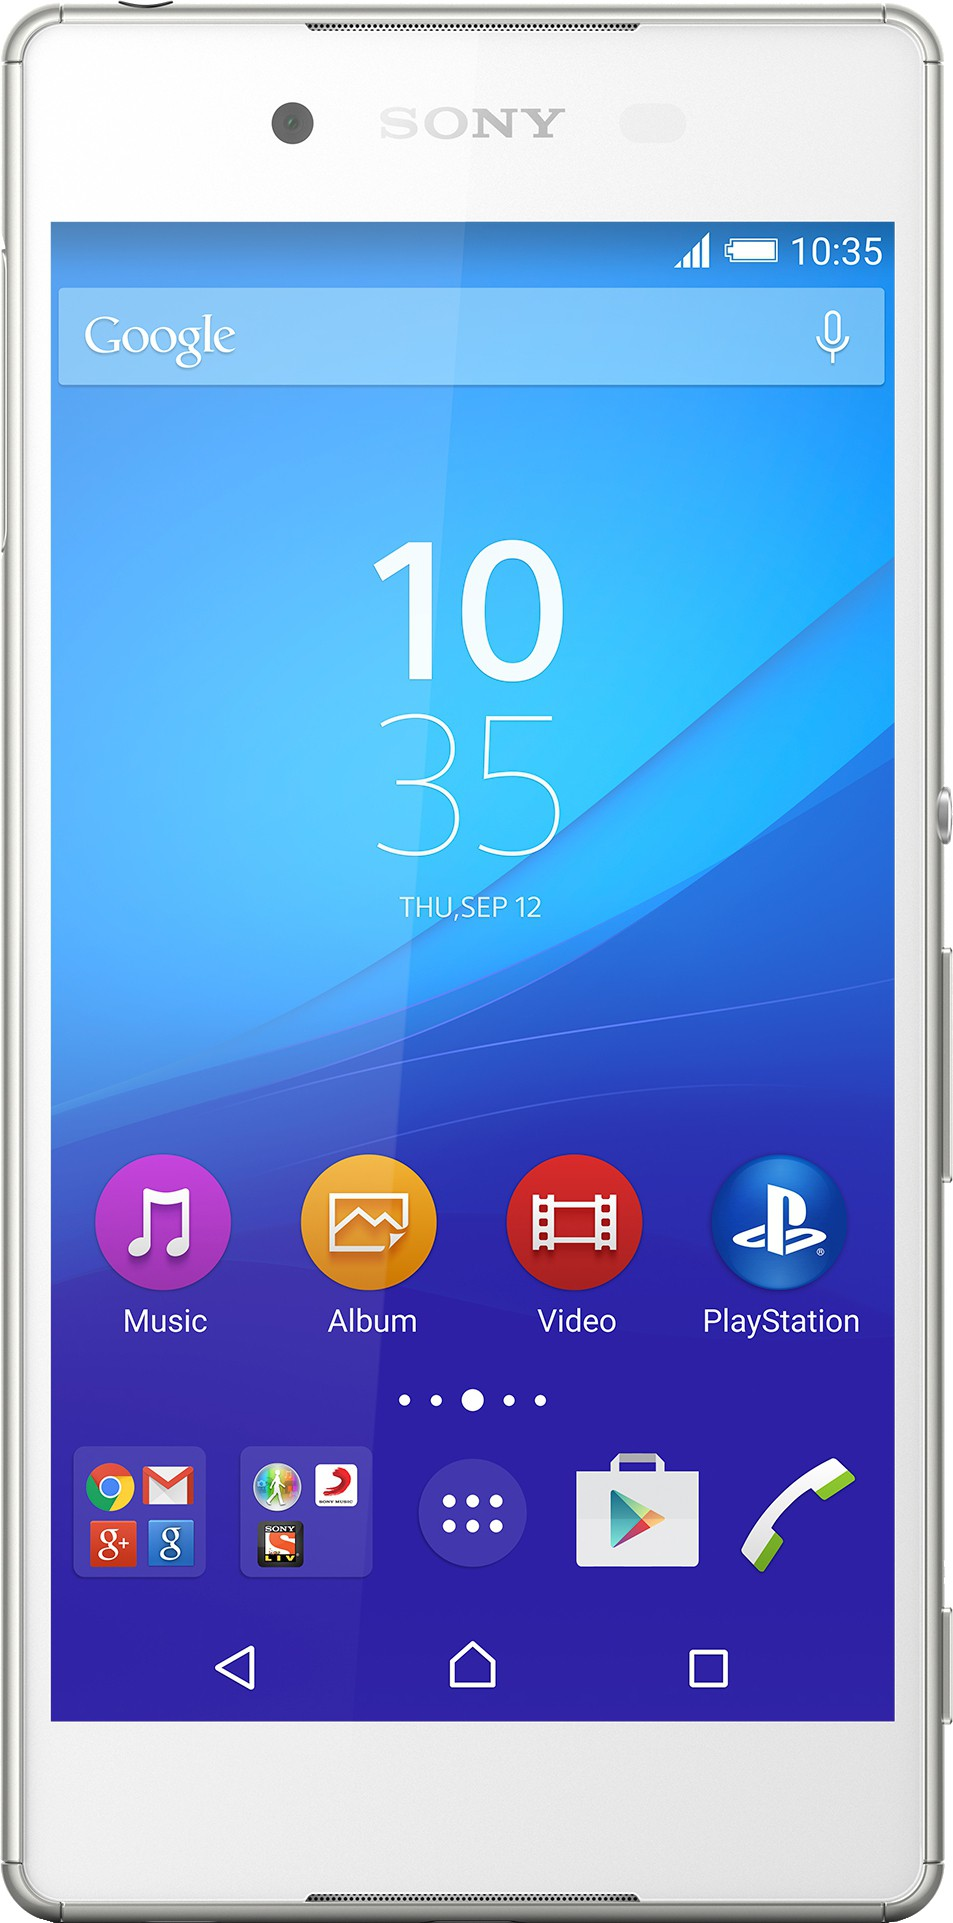 Sony Xperia Z3 Plus (3GB RAM, 32GB)